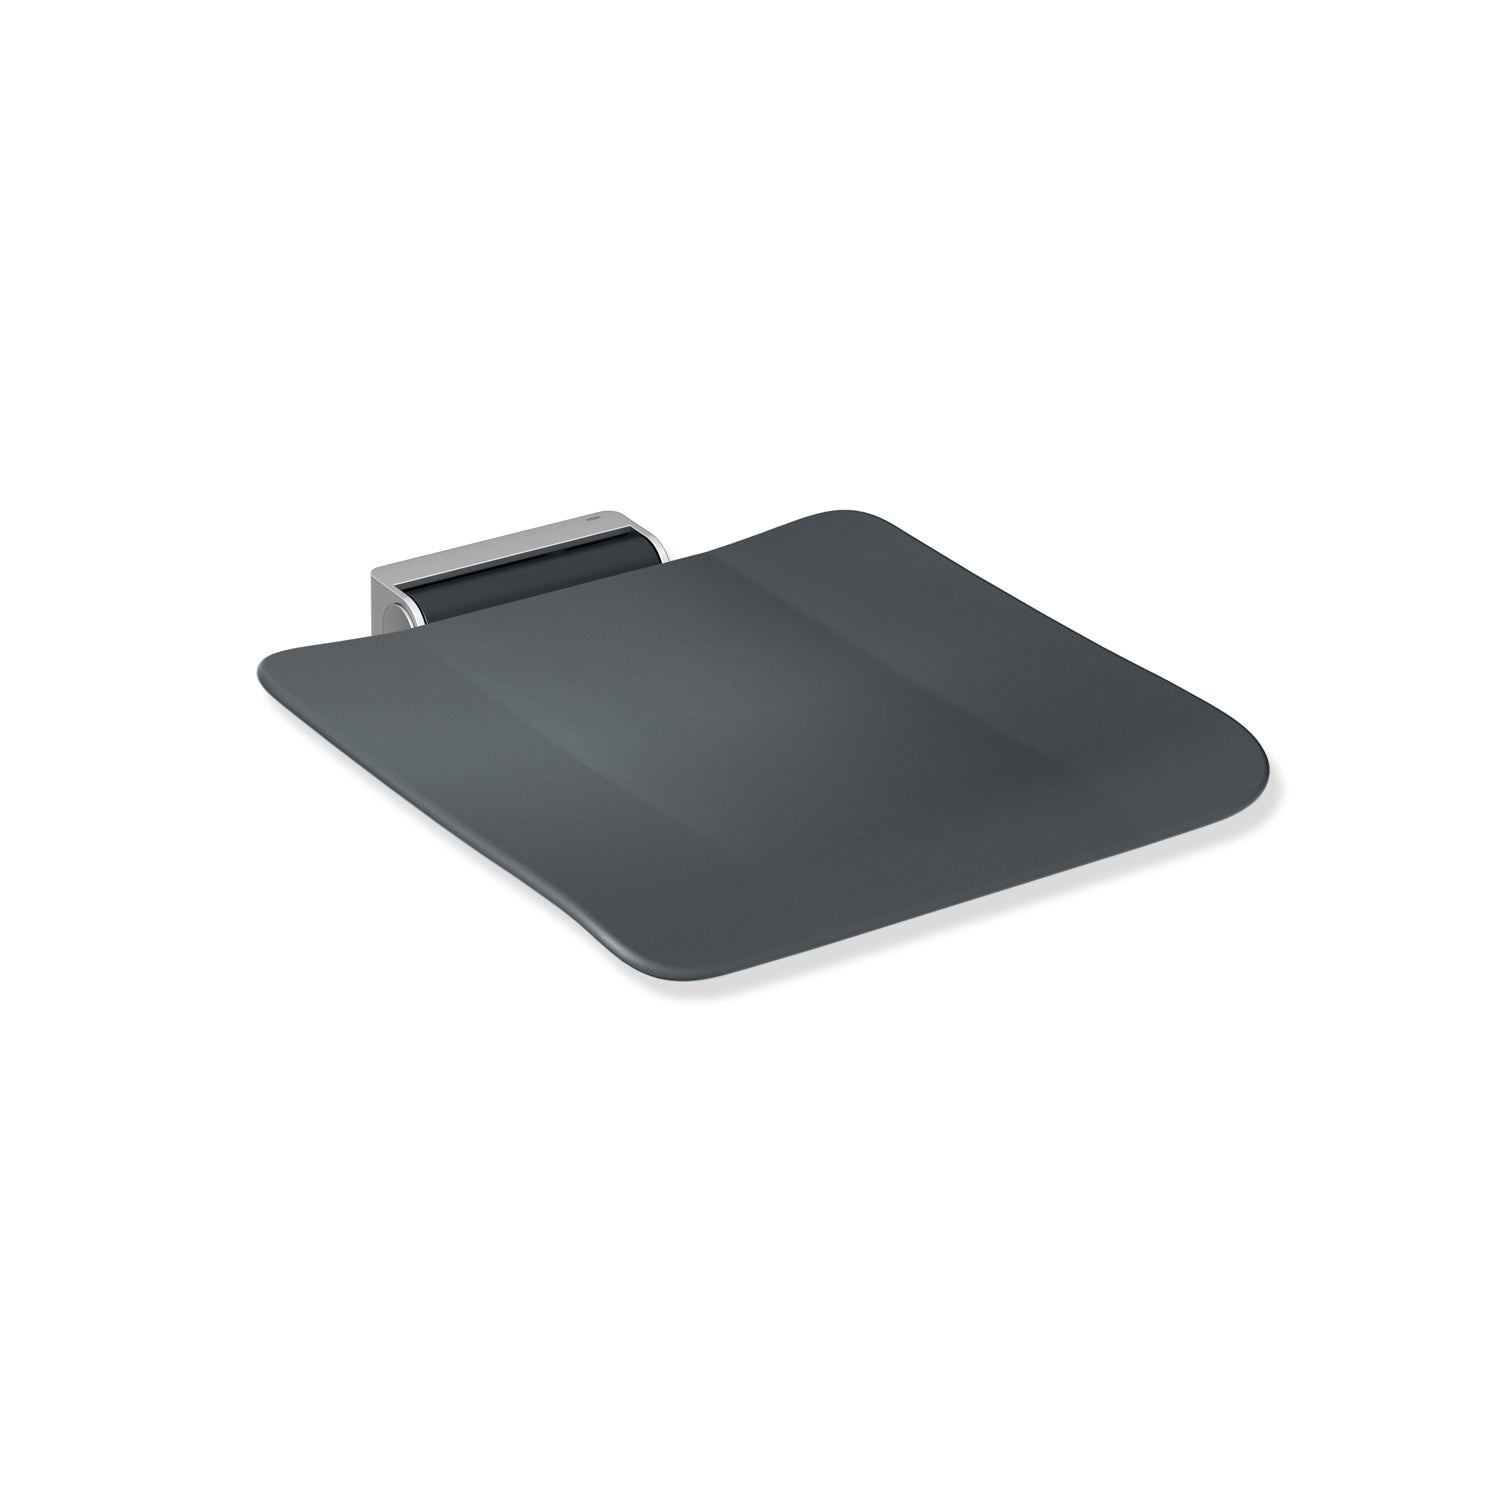 Freestyle Removable Shower Seat Set with an anthracite grey Seat Set and satin steel bracket on a white background